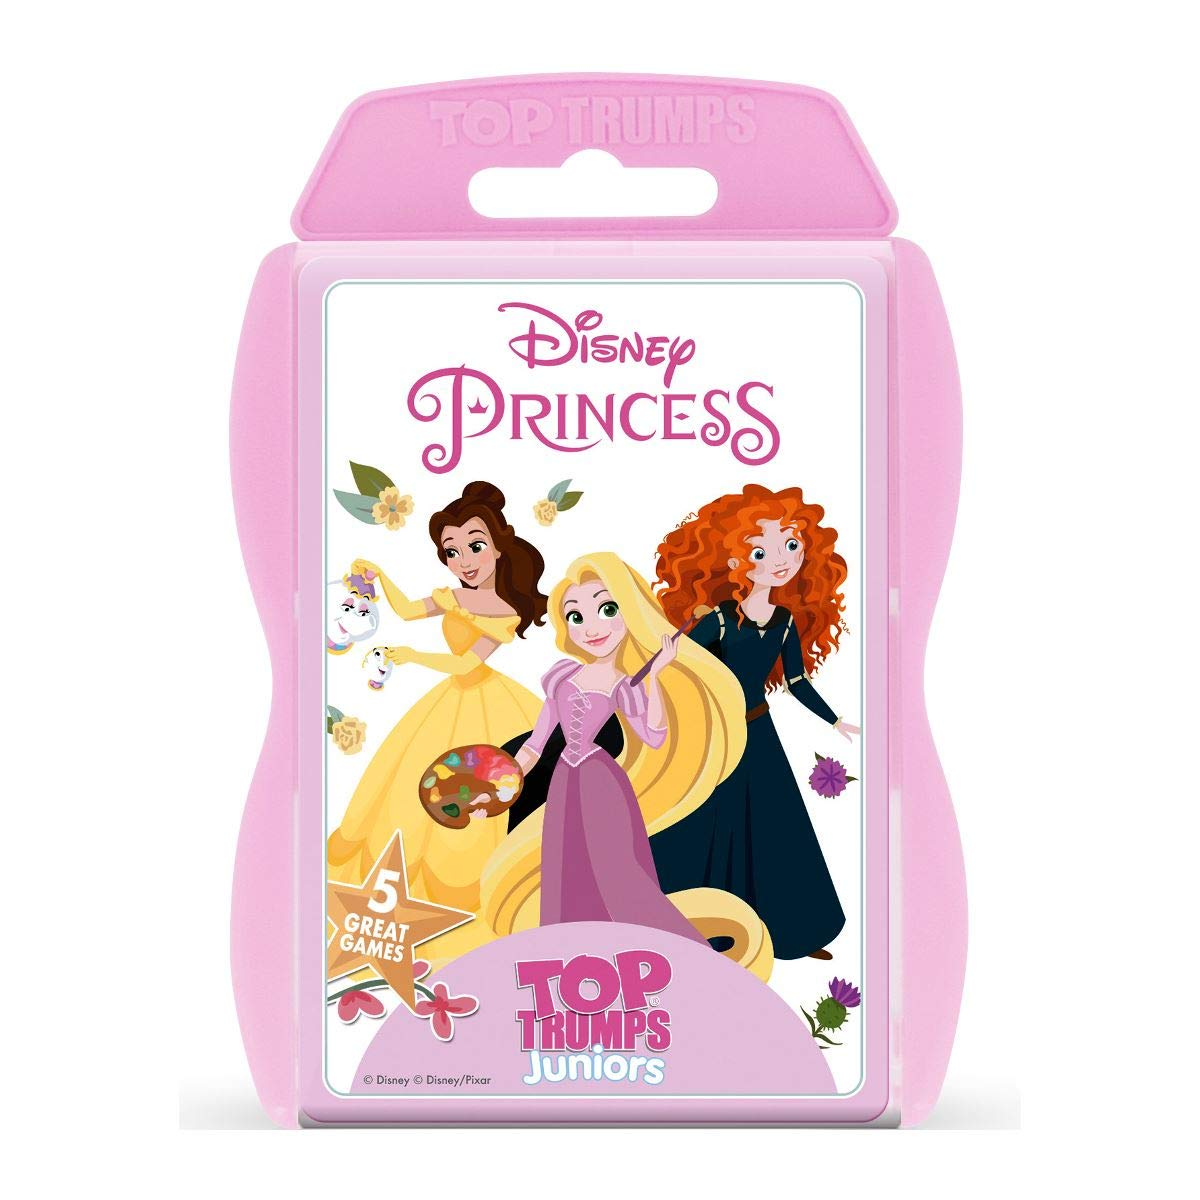 dbca7213720 Top Trumps Disney Princess Junior Card Game  Amazon.co.uk  Toys   Games